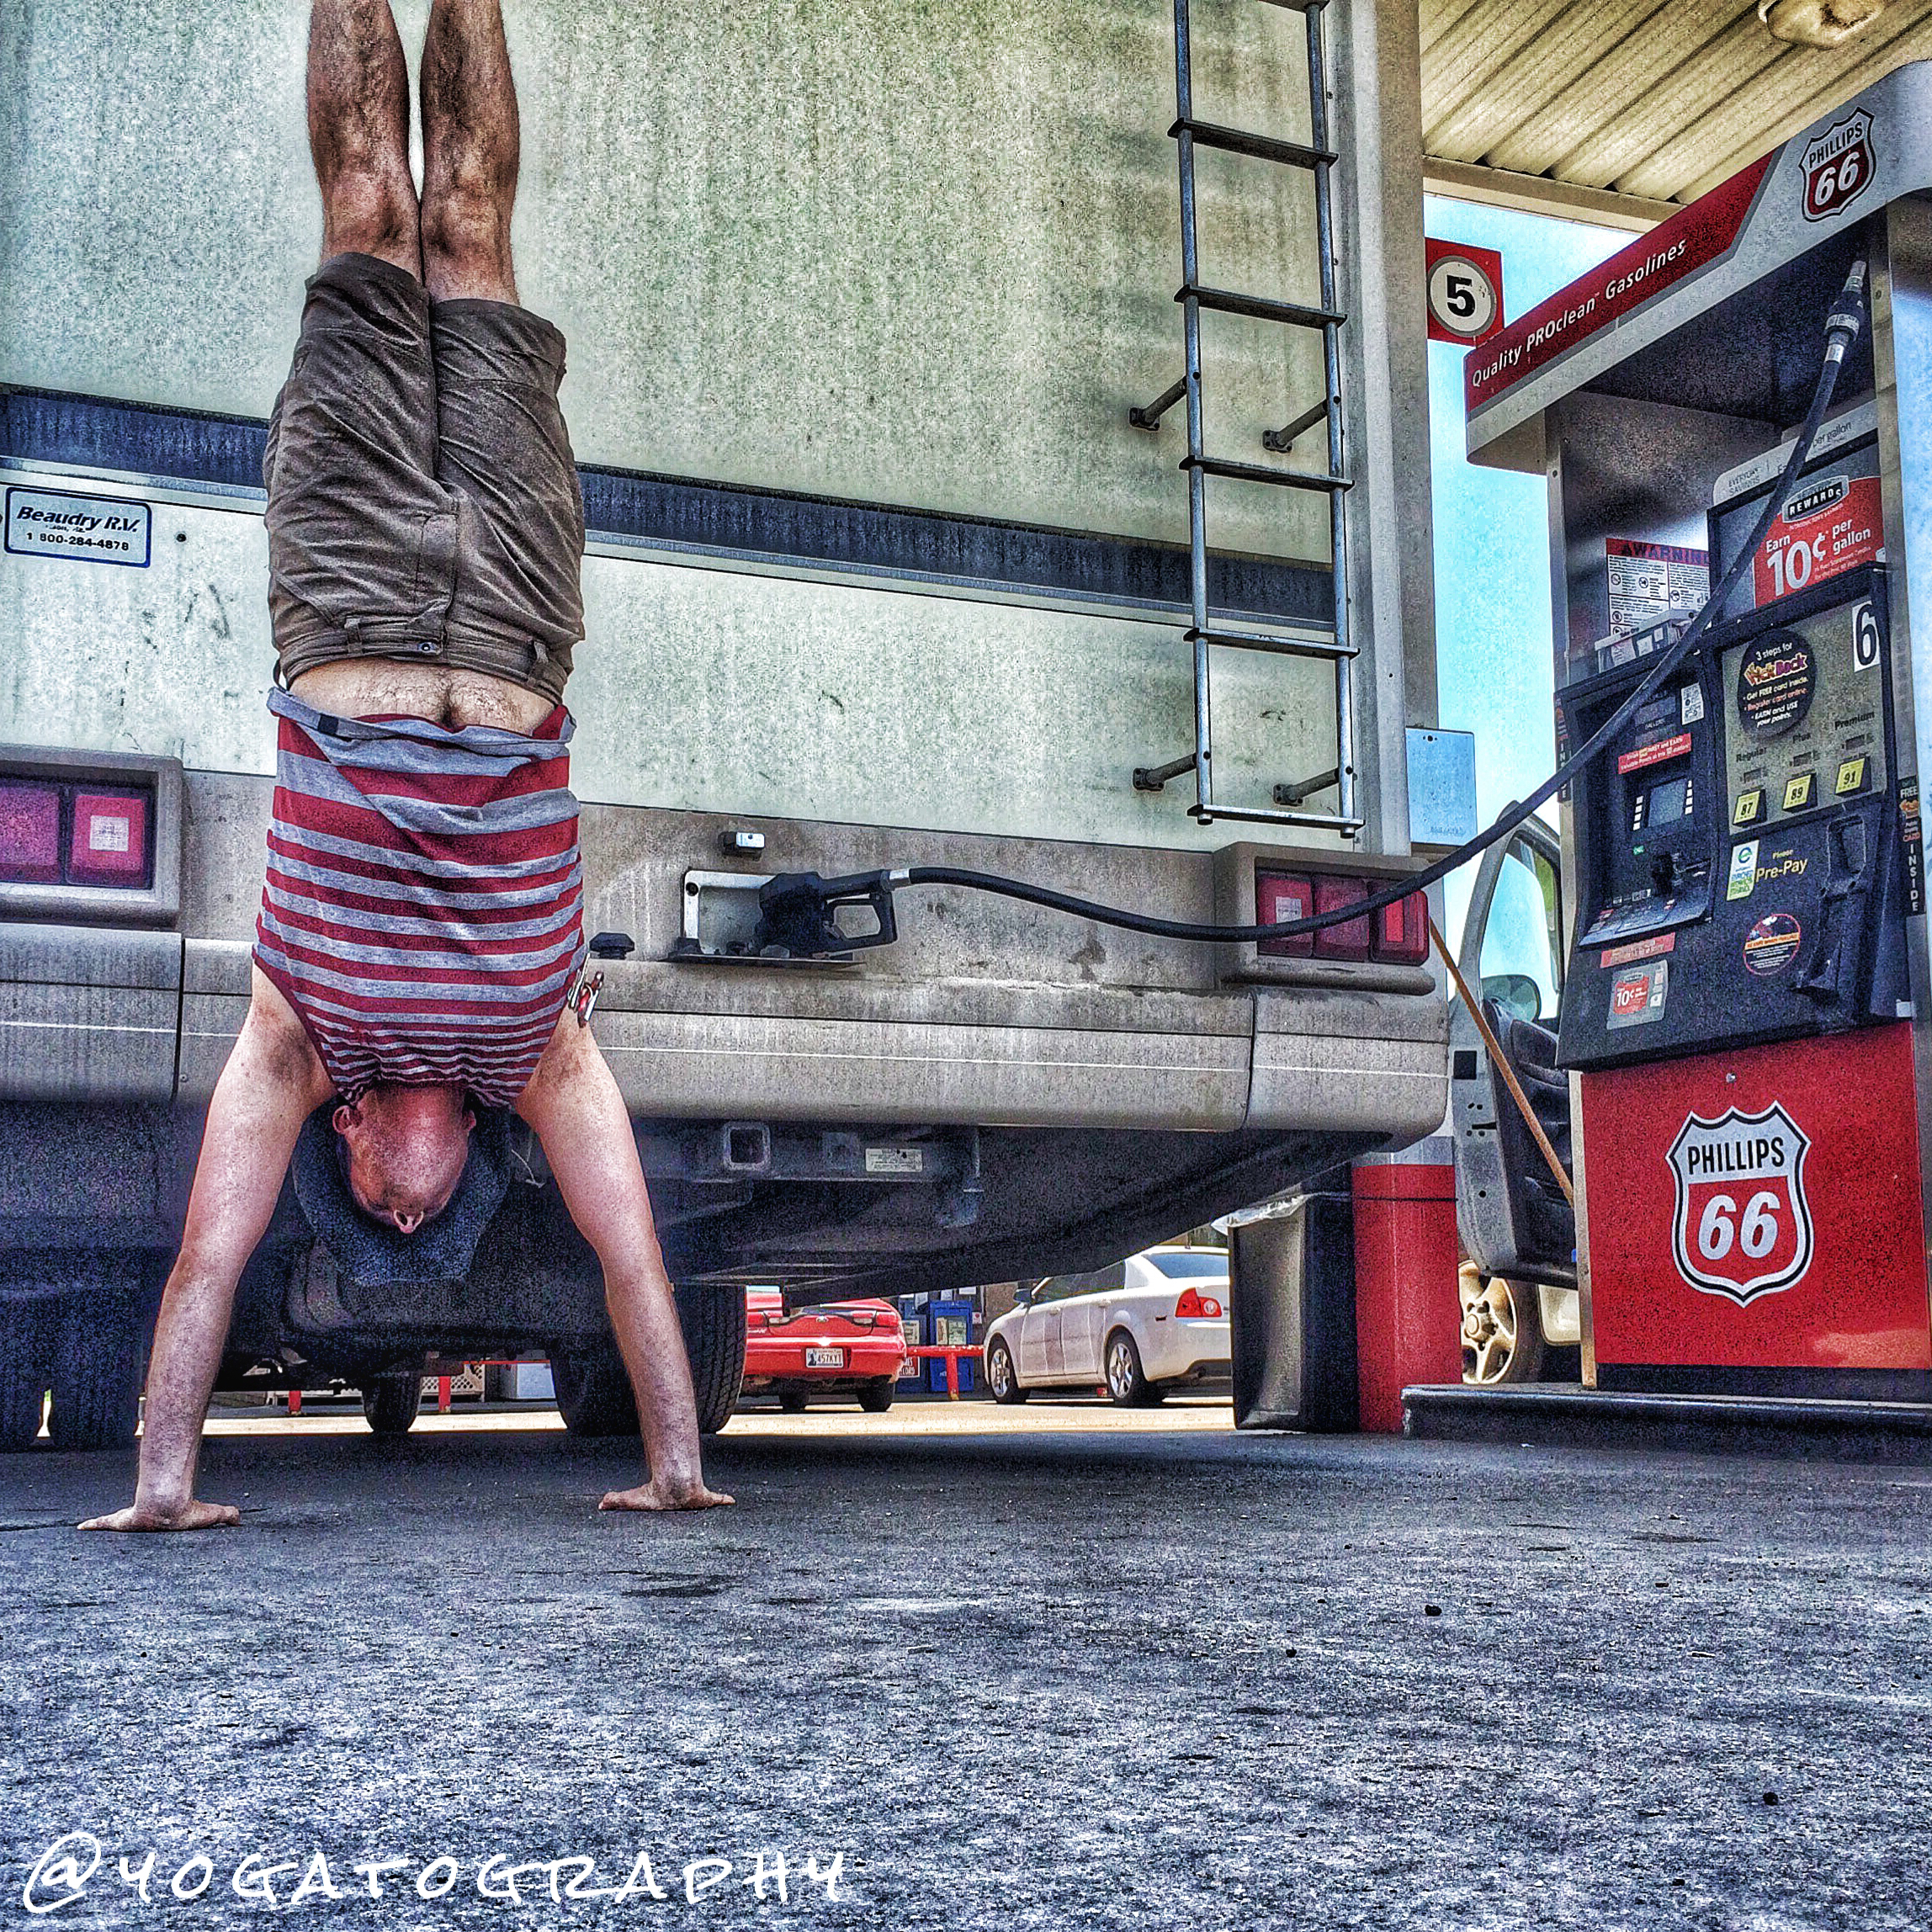 The first handstand pic of the trip, which attests to my stress level that I didn't think to do one before I was halfway across the country.